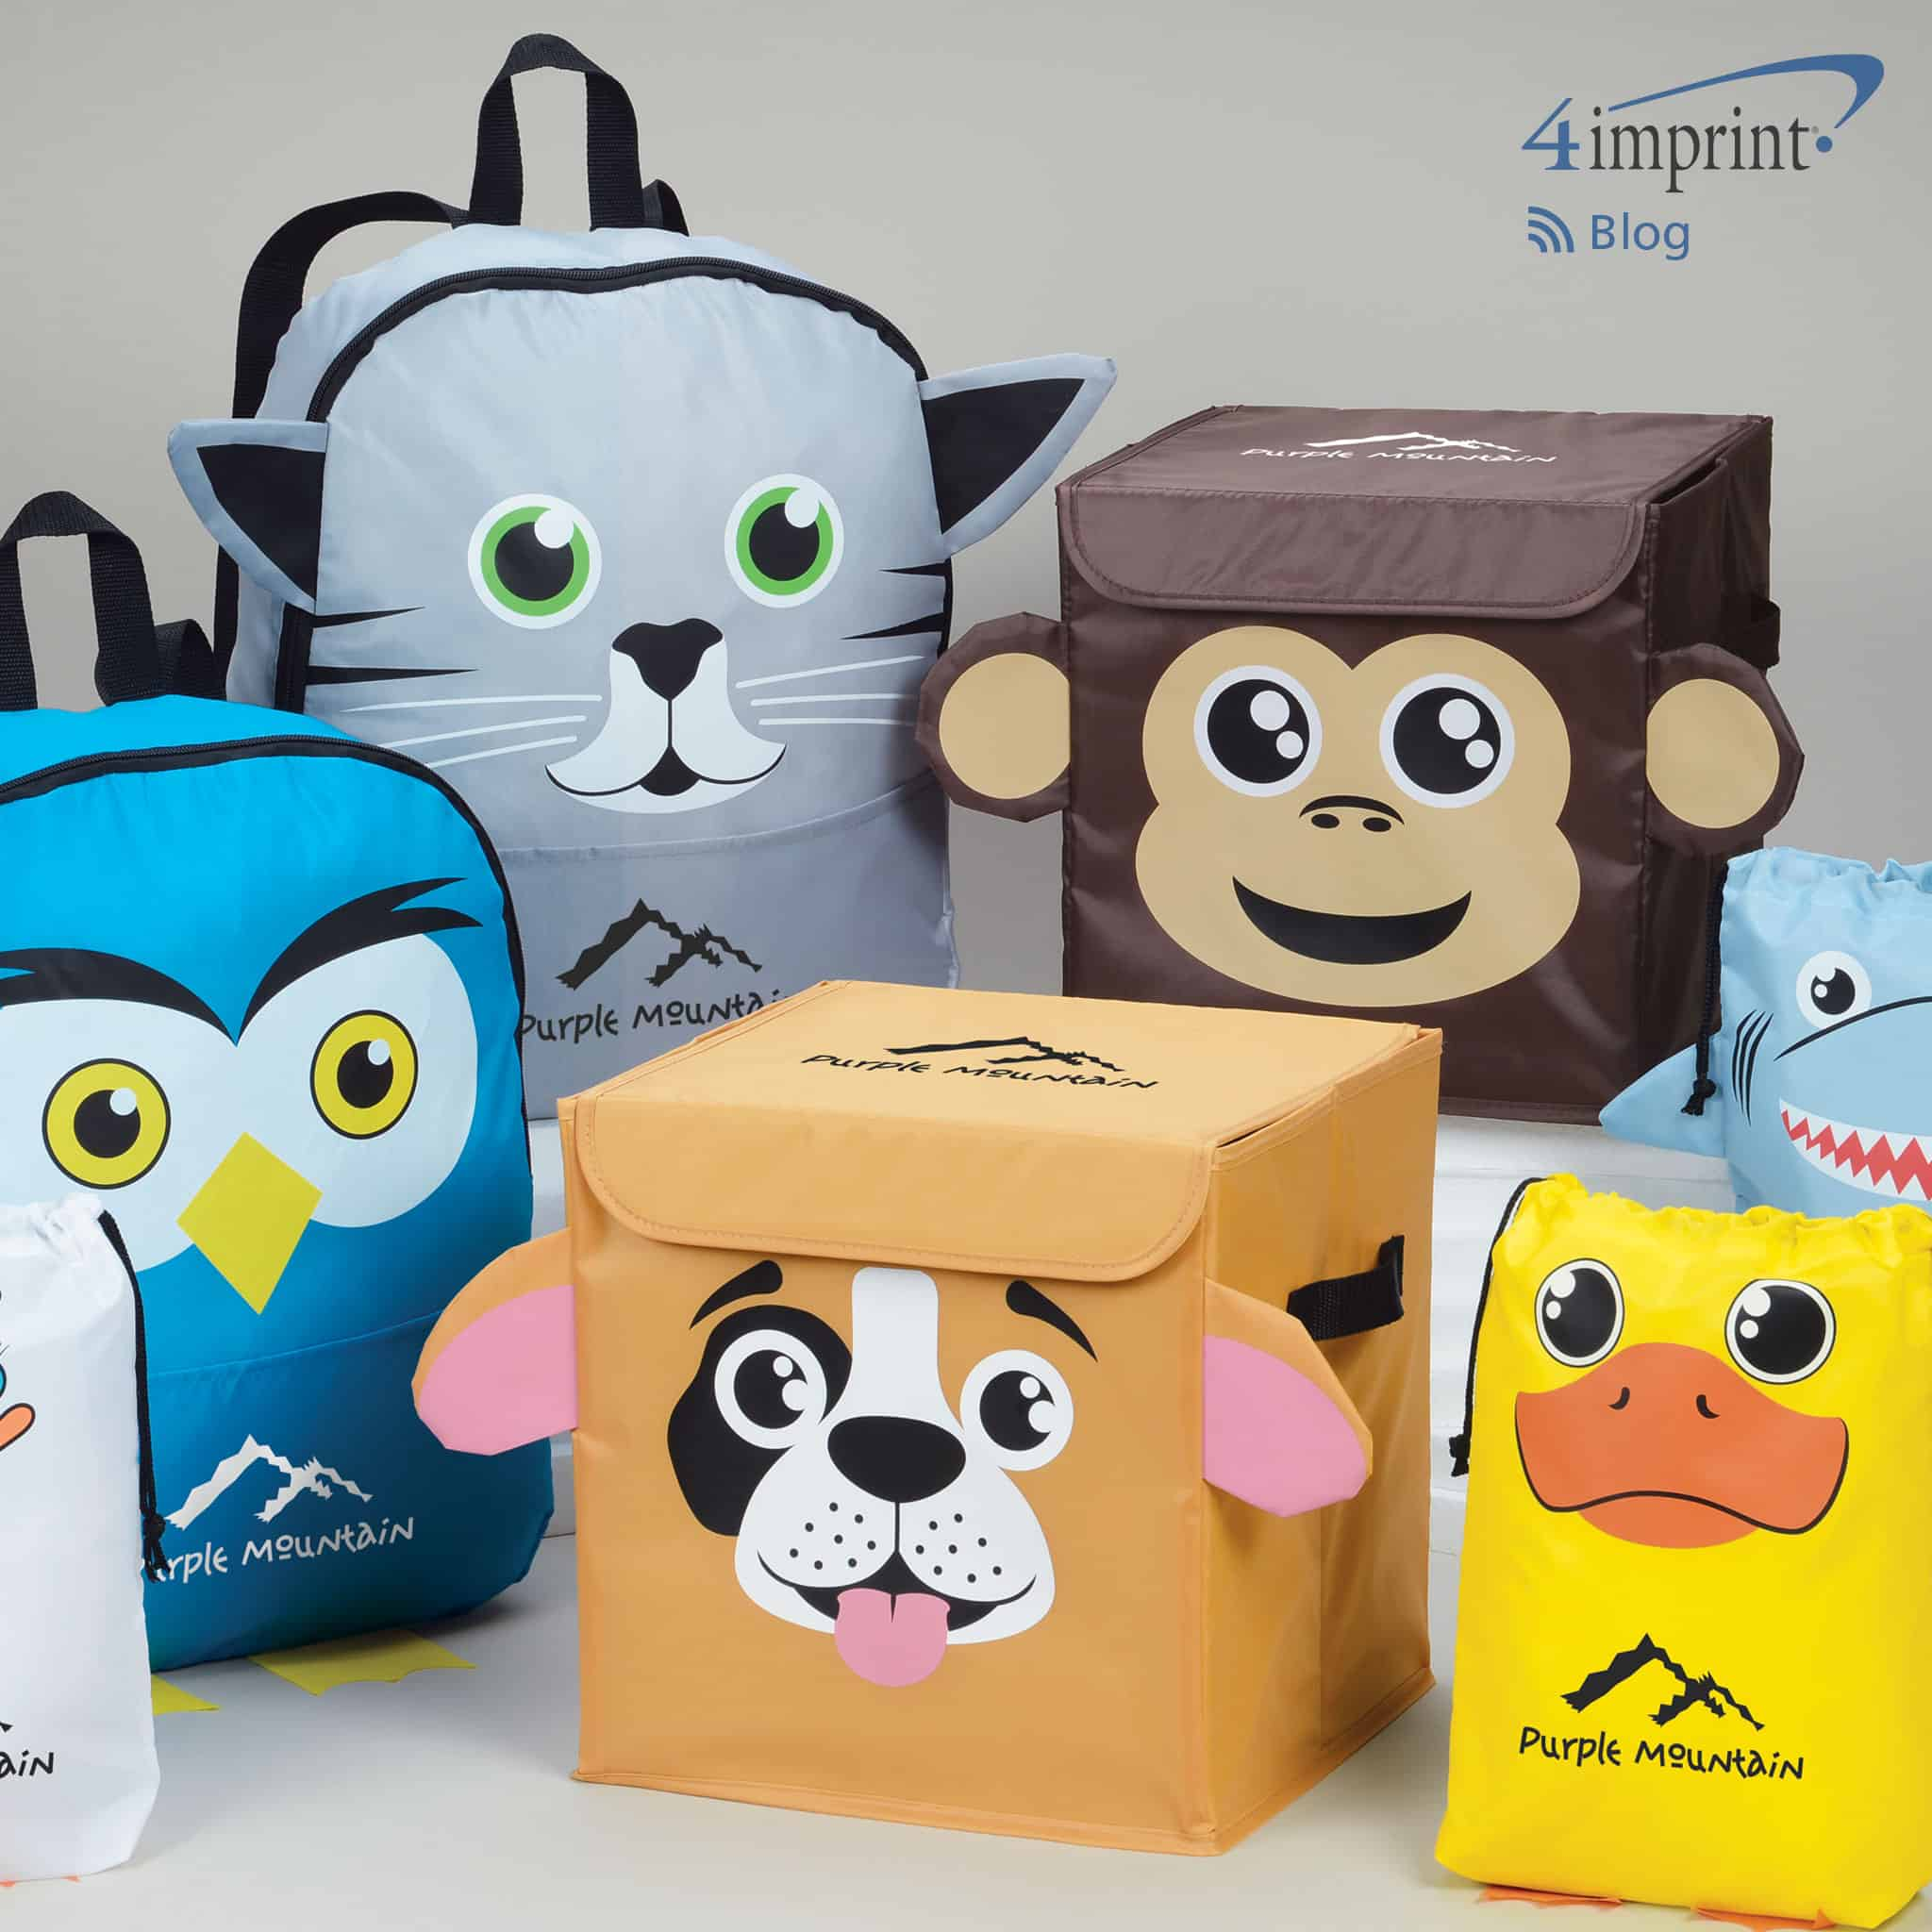 Paws and Claws Promotional Products Make Perfect Gifts for Animal Lovers